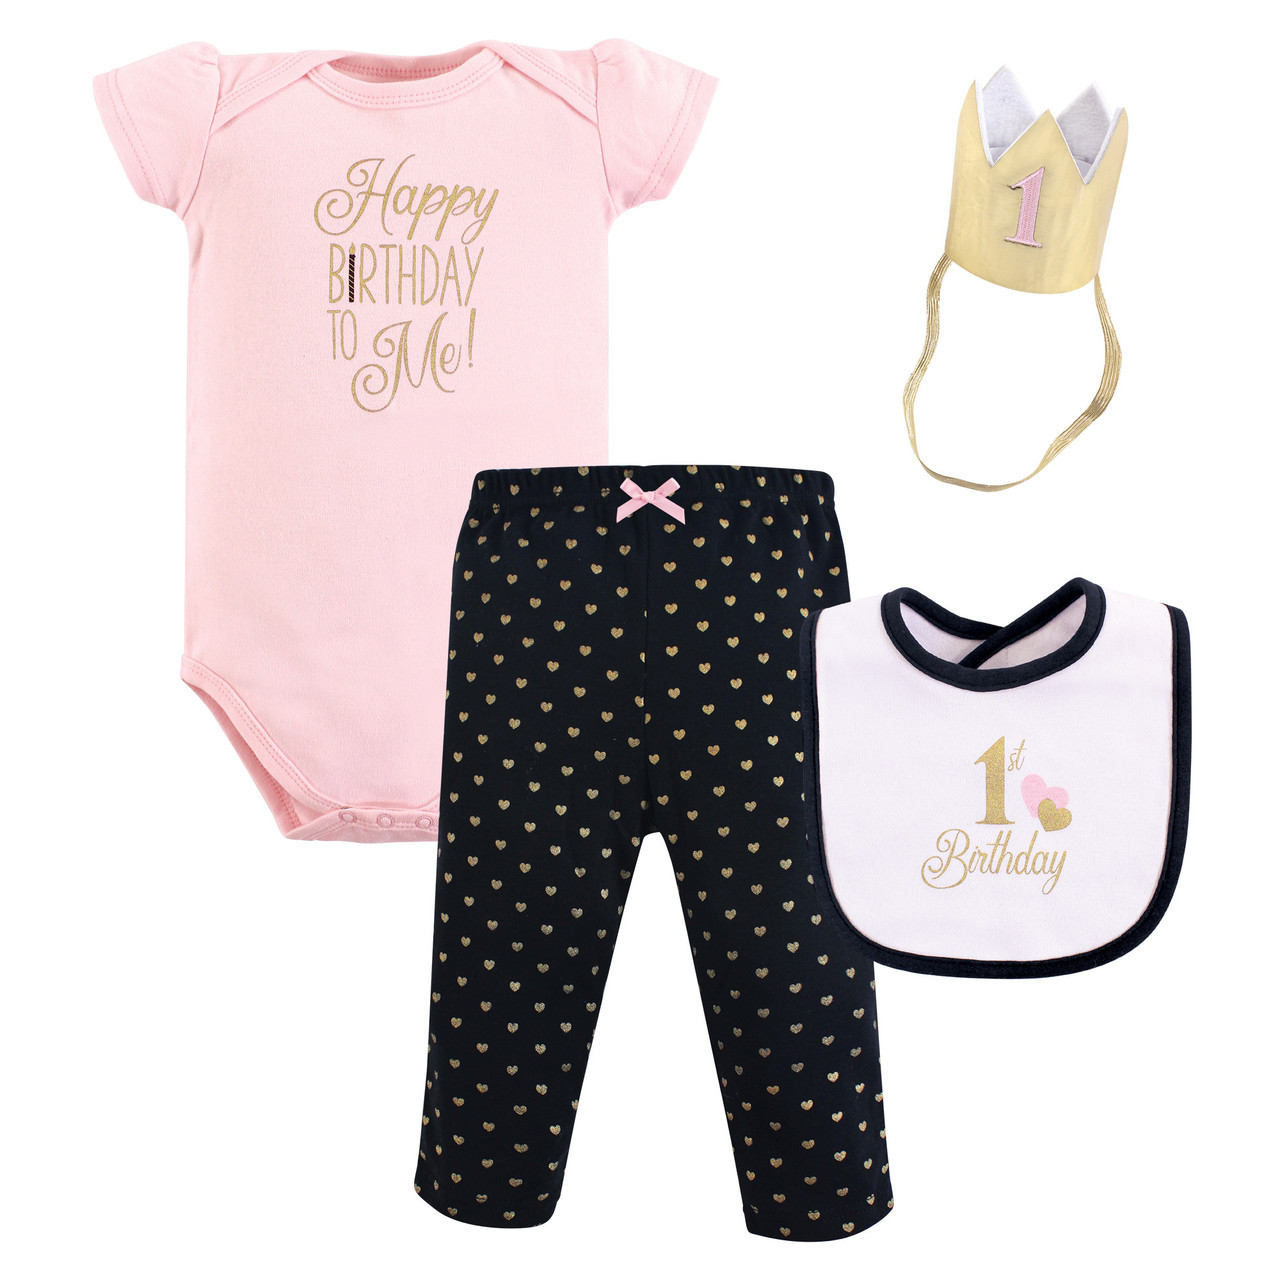 First Birthday Outfit Gift Set 4 Piece Black And Pink 12 Months